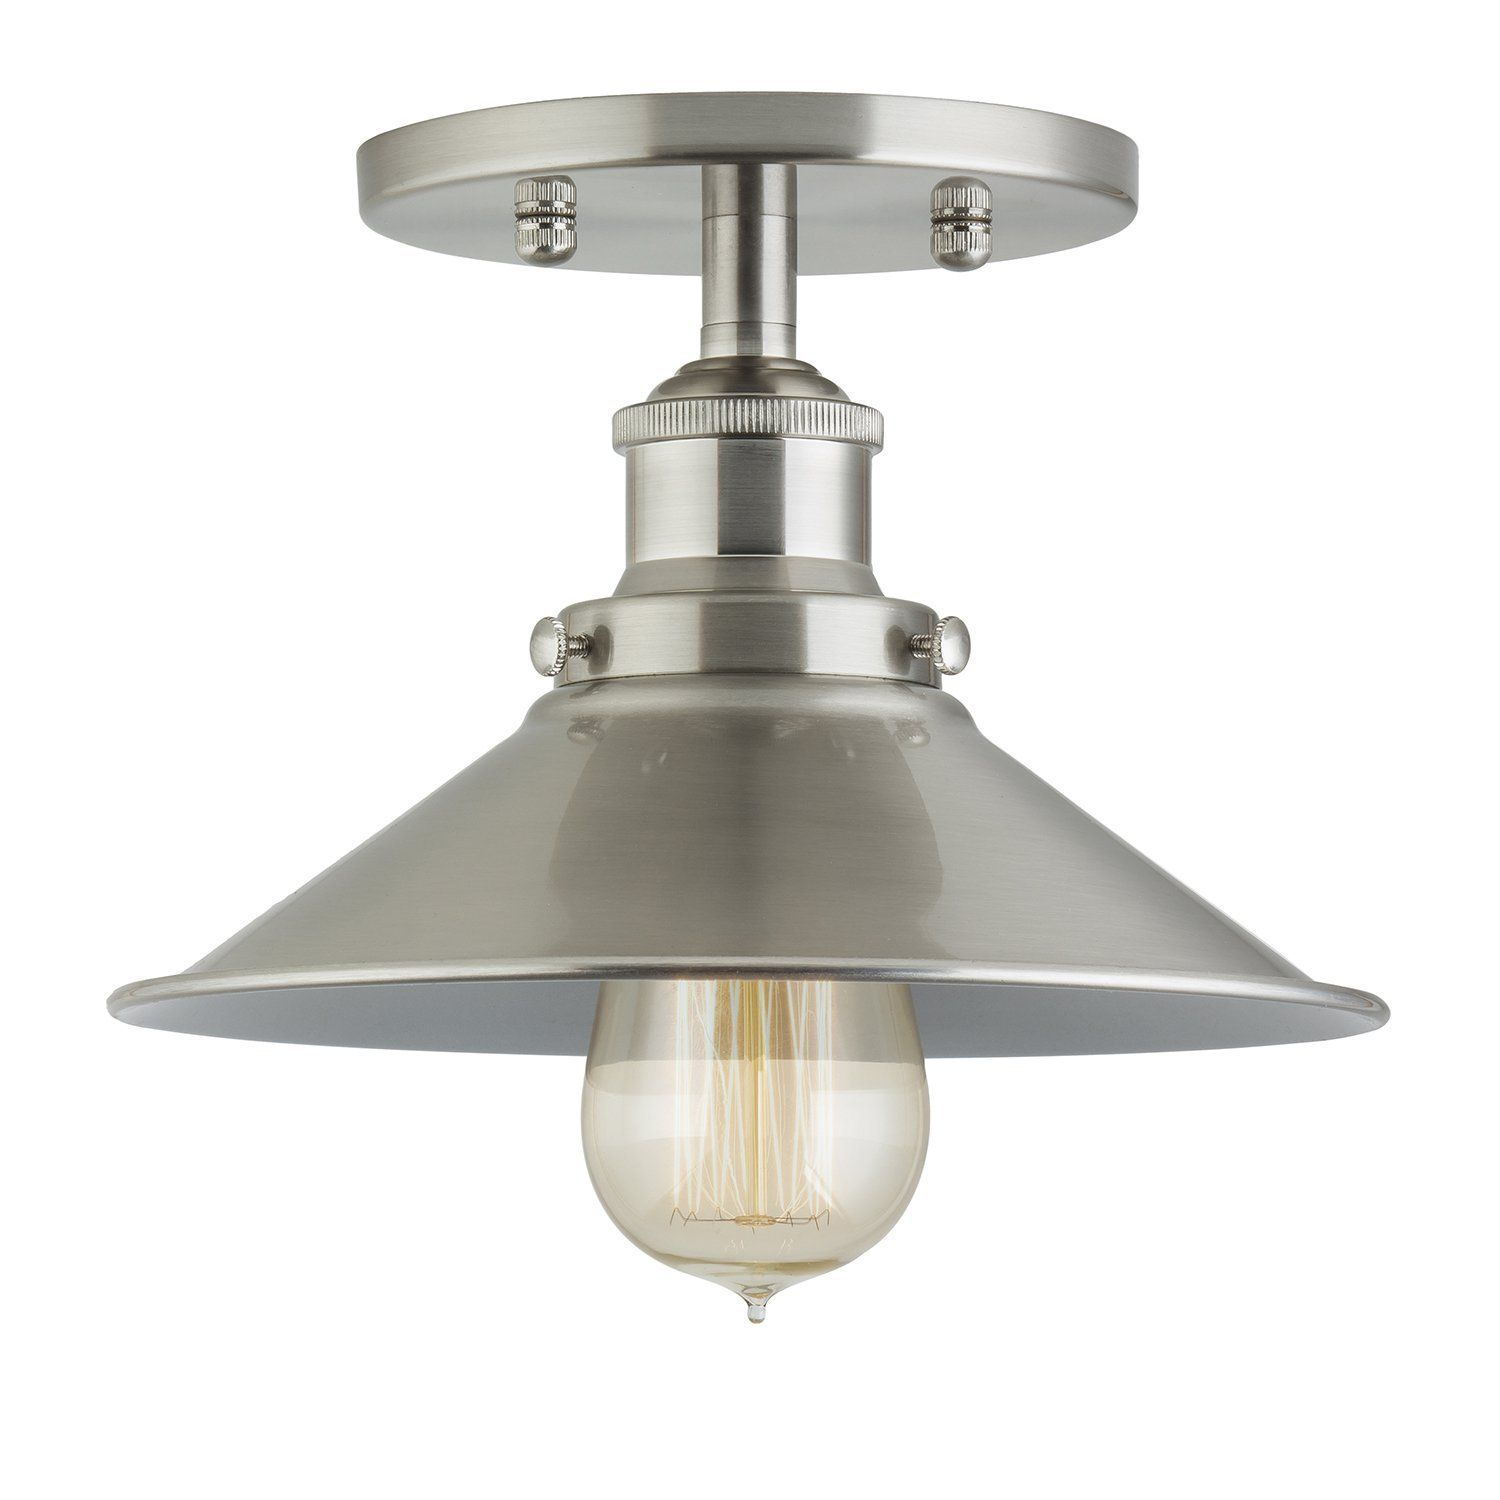 with ceilings light lighting in satin shop ceiling at led polished astronaut nickel flush mount dalesford fan round fixture allen roth com centerville brushed kit lowes